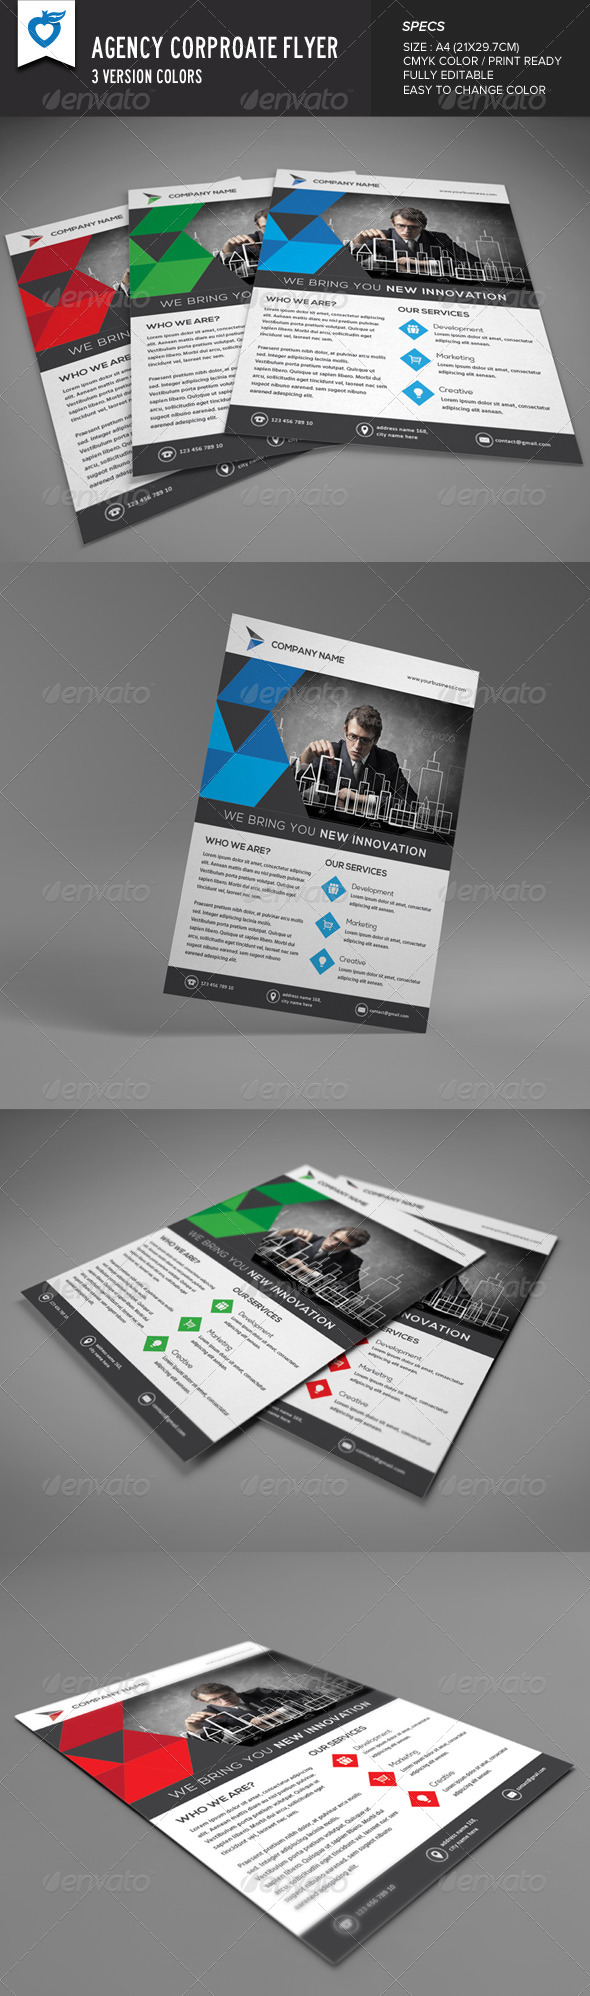 Agency Corporate Flyer